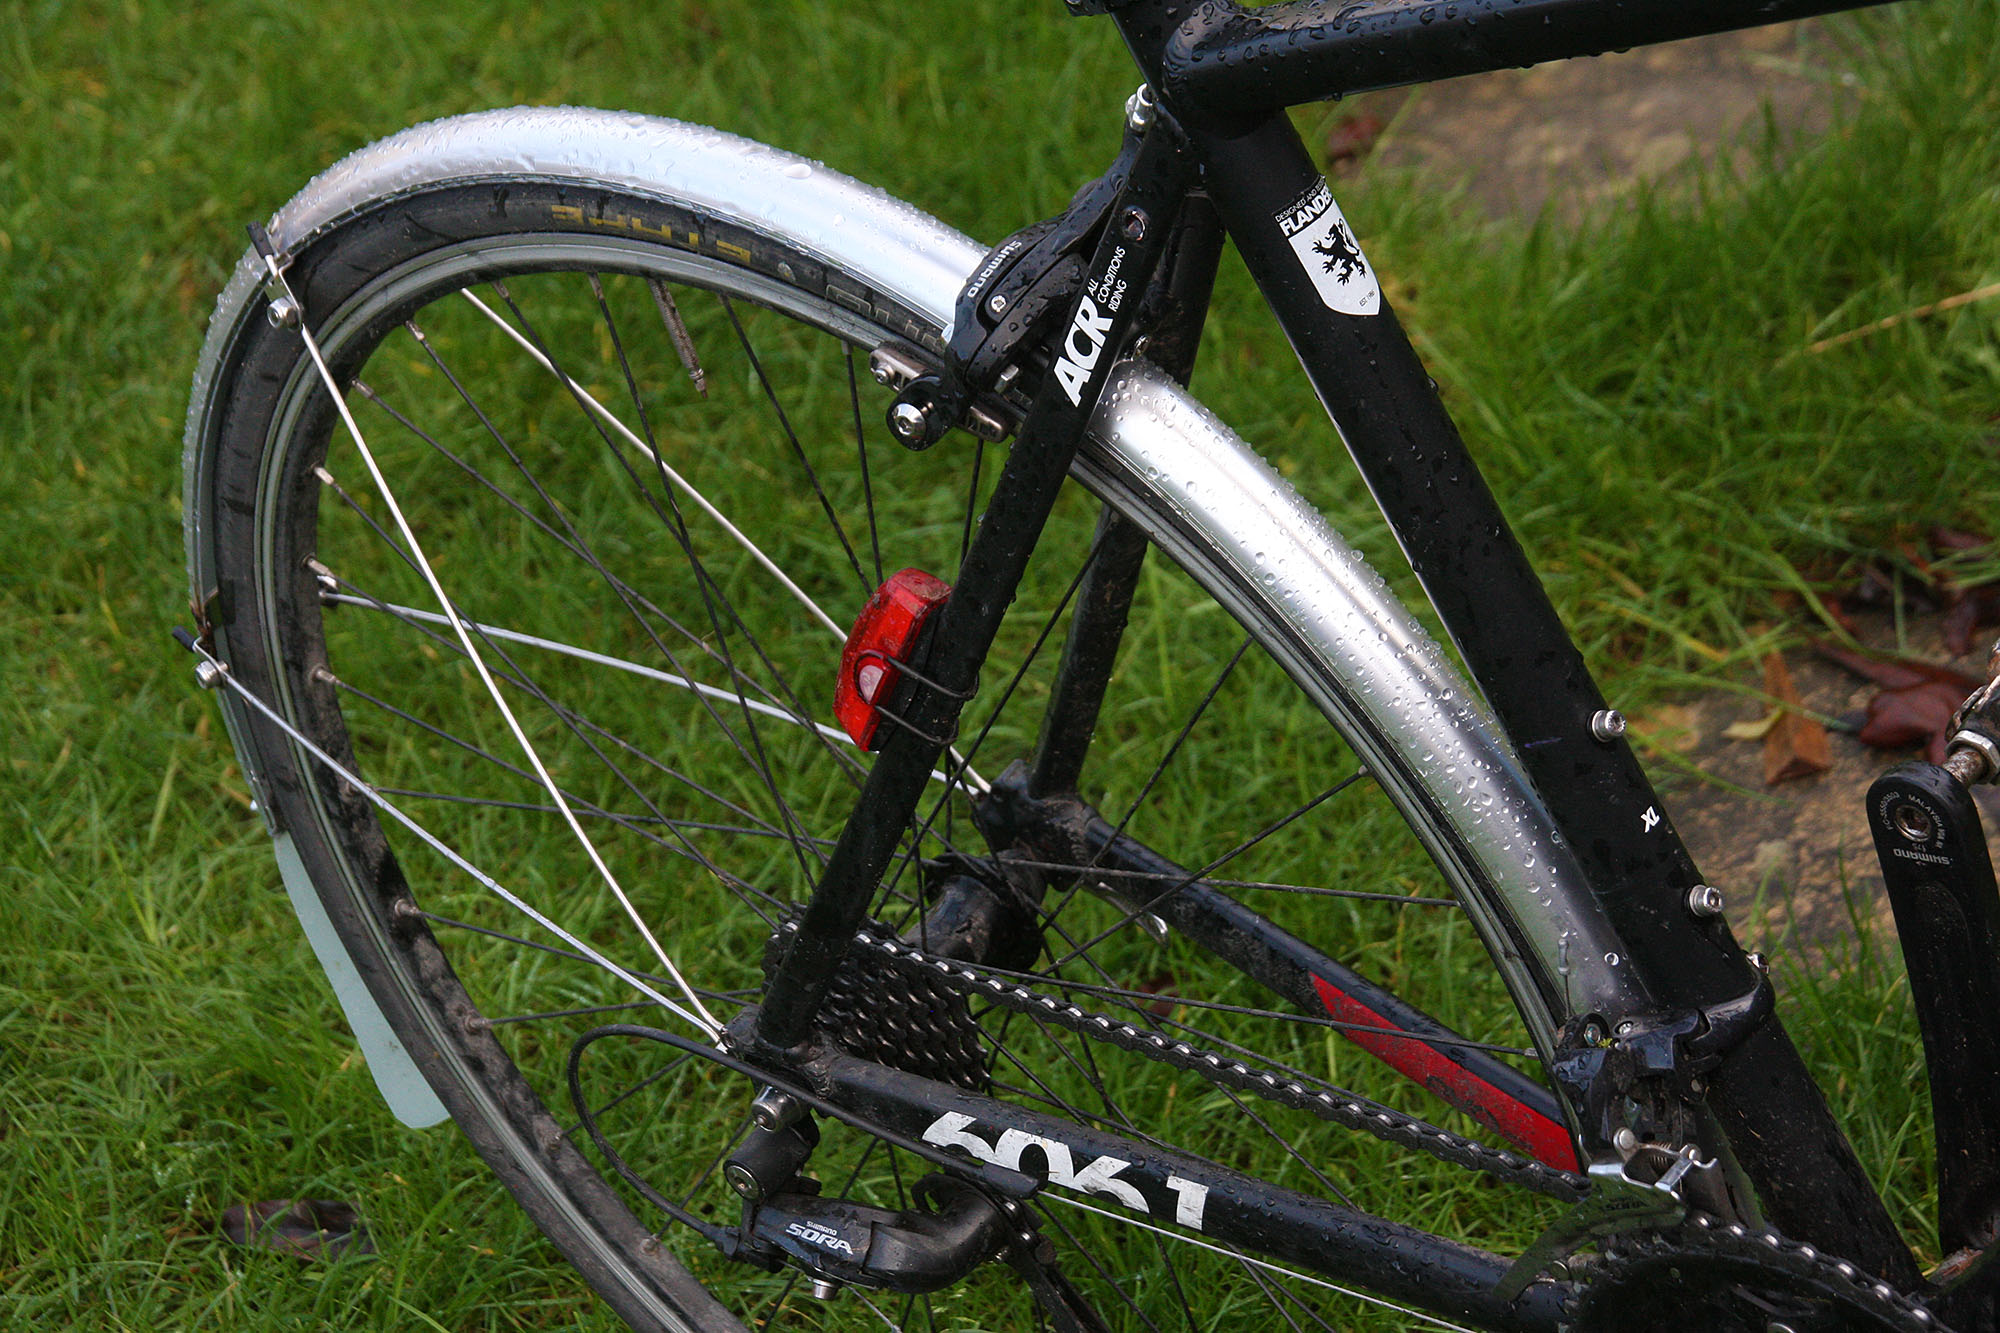 Rear Mud Guards Mudguard F CL 1 Set Cycling MTB Mountain Bike Bicycle Front